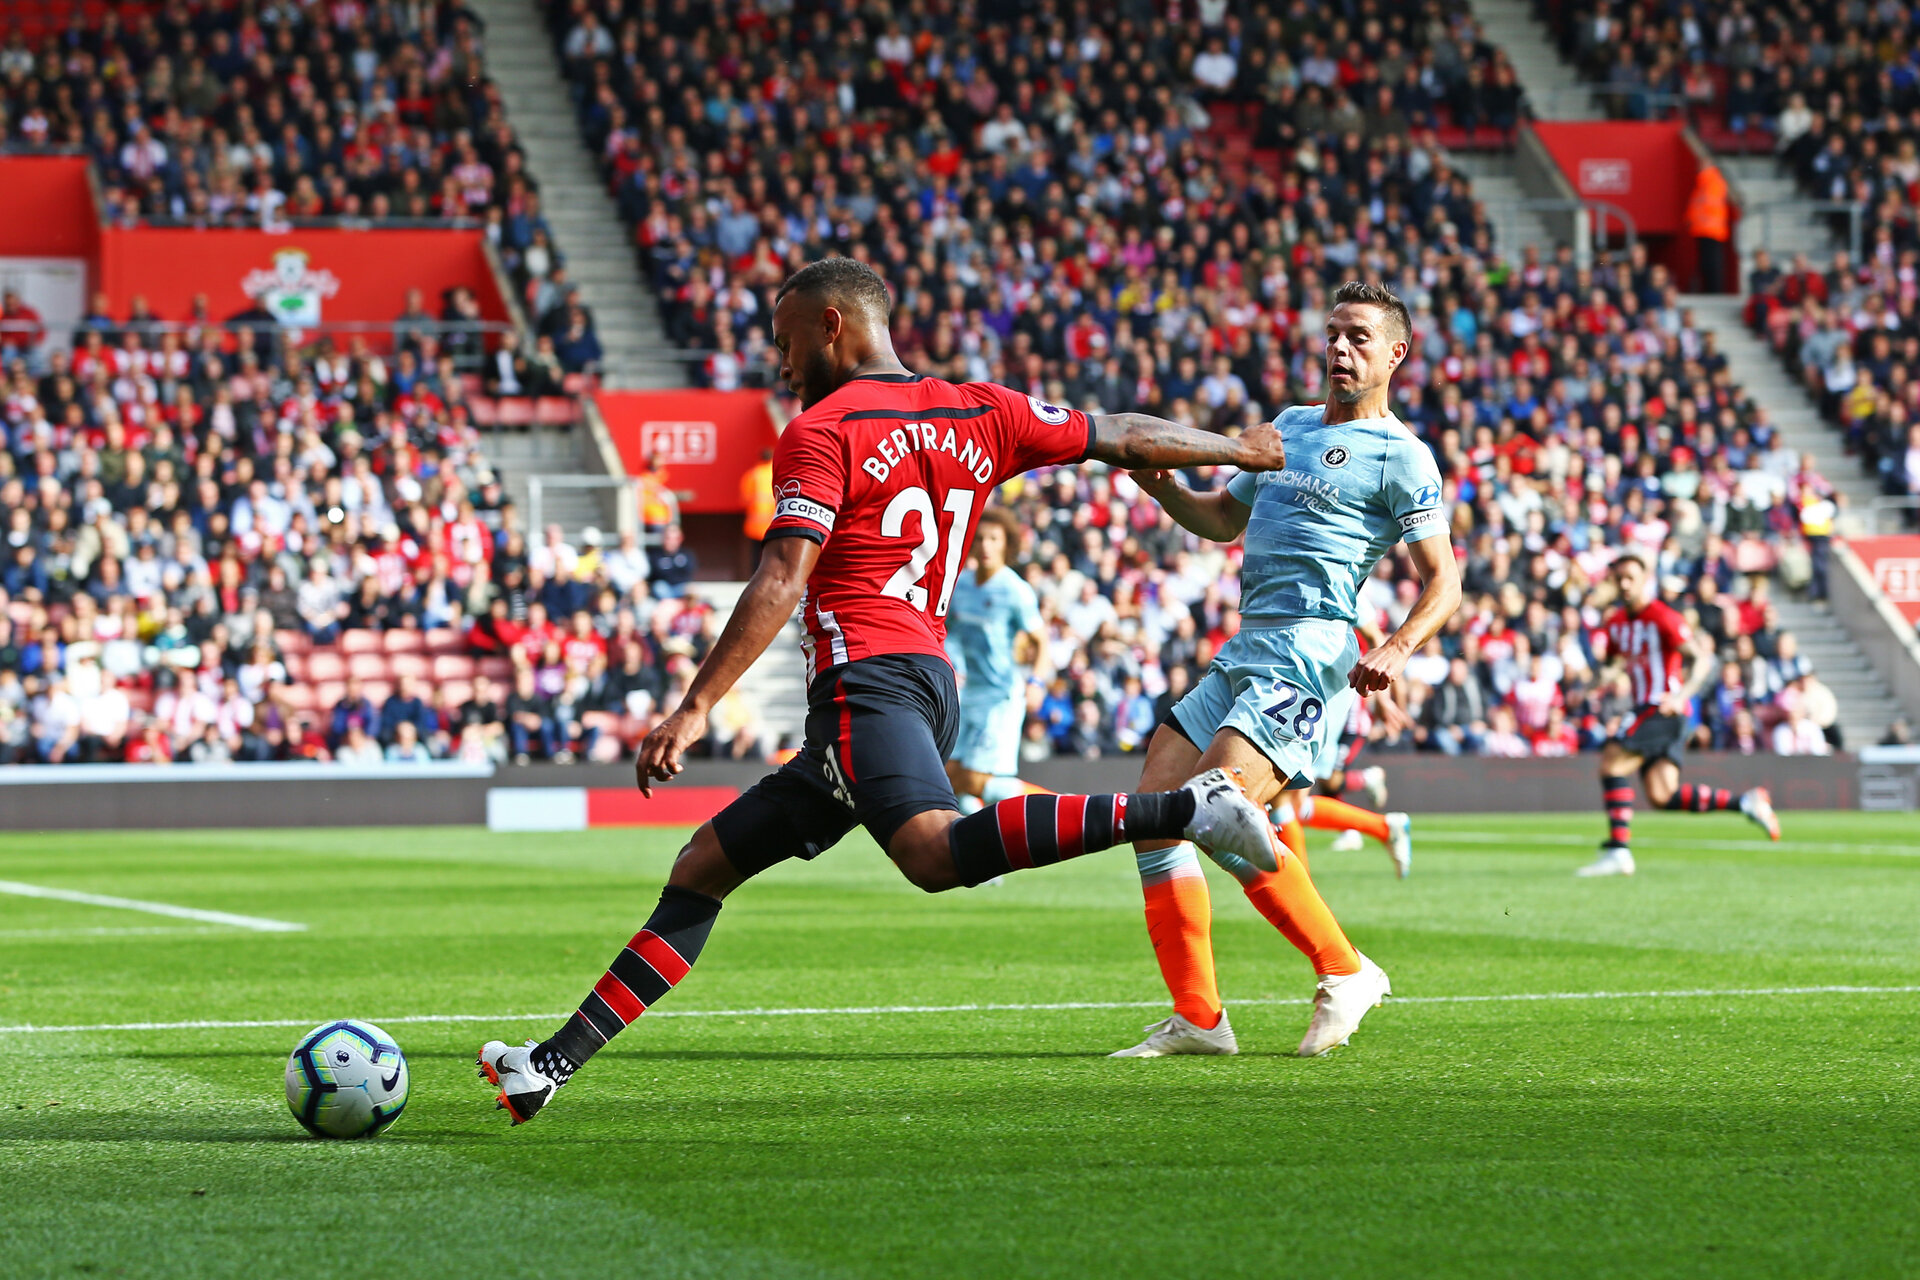 SOUTHAMPTON, ENGLAND - OCTOBER 07: Ryan Bertrand (left) of Southampton FC up against Cesar Azpilicueta (right) of Chelsea FC during the Premier League match between Southampton FC and Chelsea FC at St Mary's Stadium on October 7, 2018 in Southampton, United Kingdom. (Photo by James Bridle - Southampton FC/Southampton FC via Getty Images)